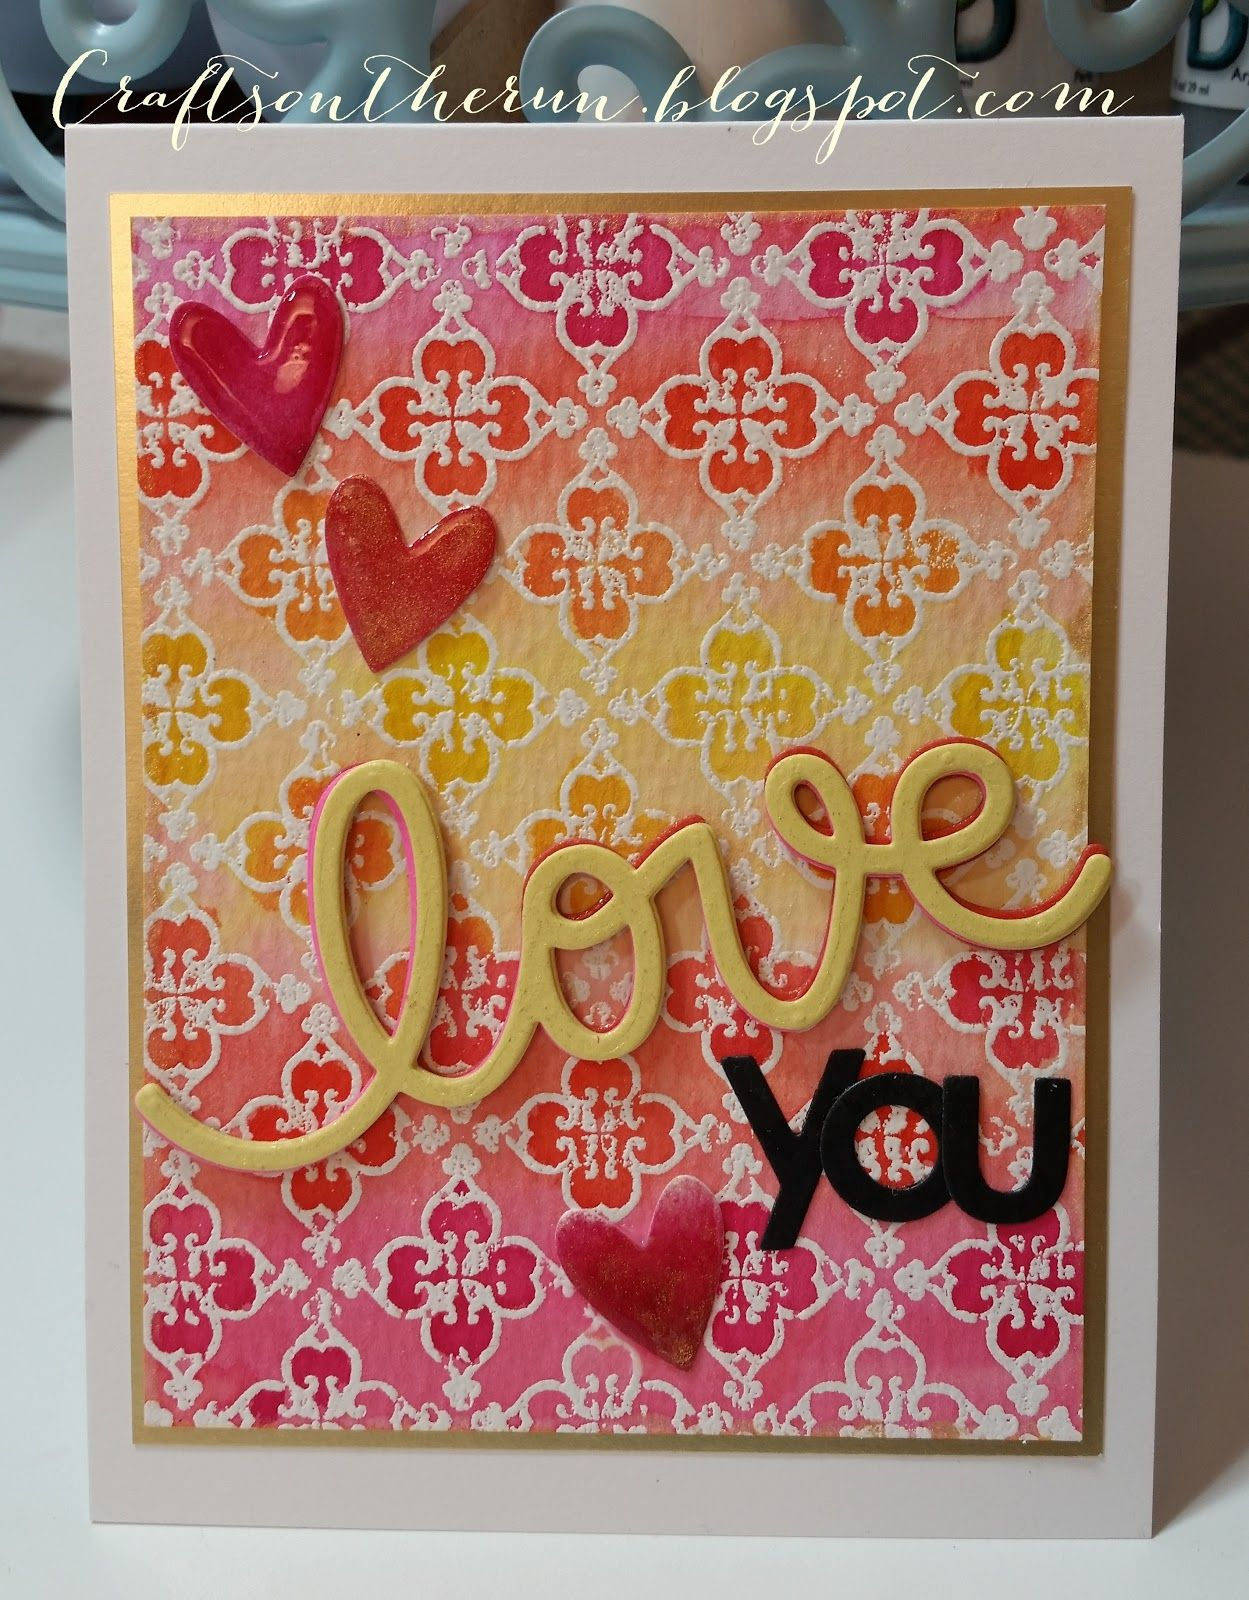 OOTSR Valentines Day Cutting Dies Photo Album DIY Crafts and Valentines Day Decor Template Embossing for Scrapbooking Love Heart Craft Dies Card Making